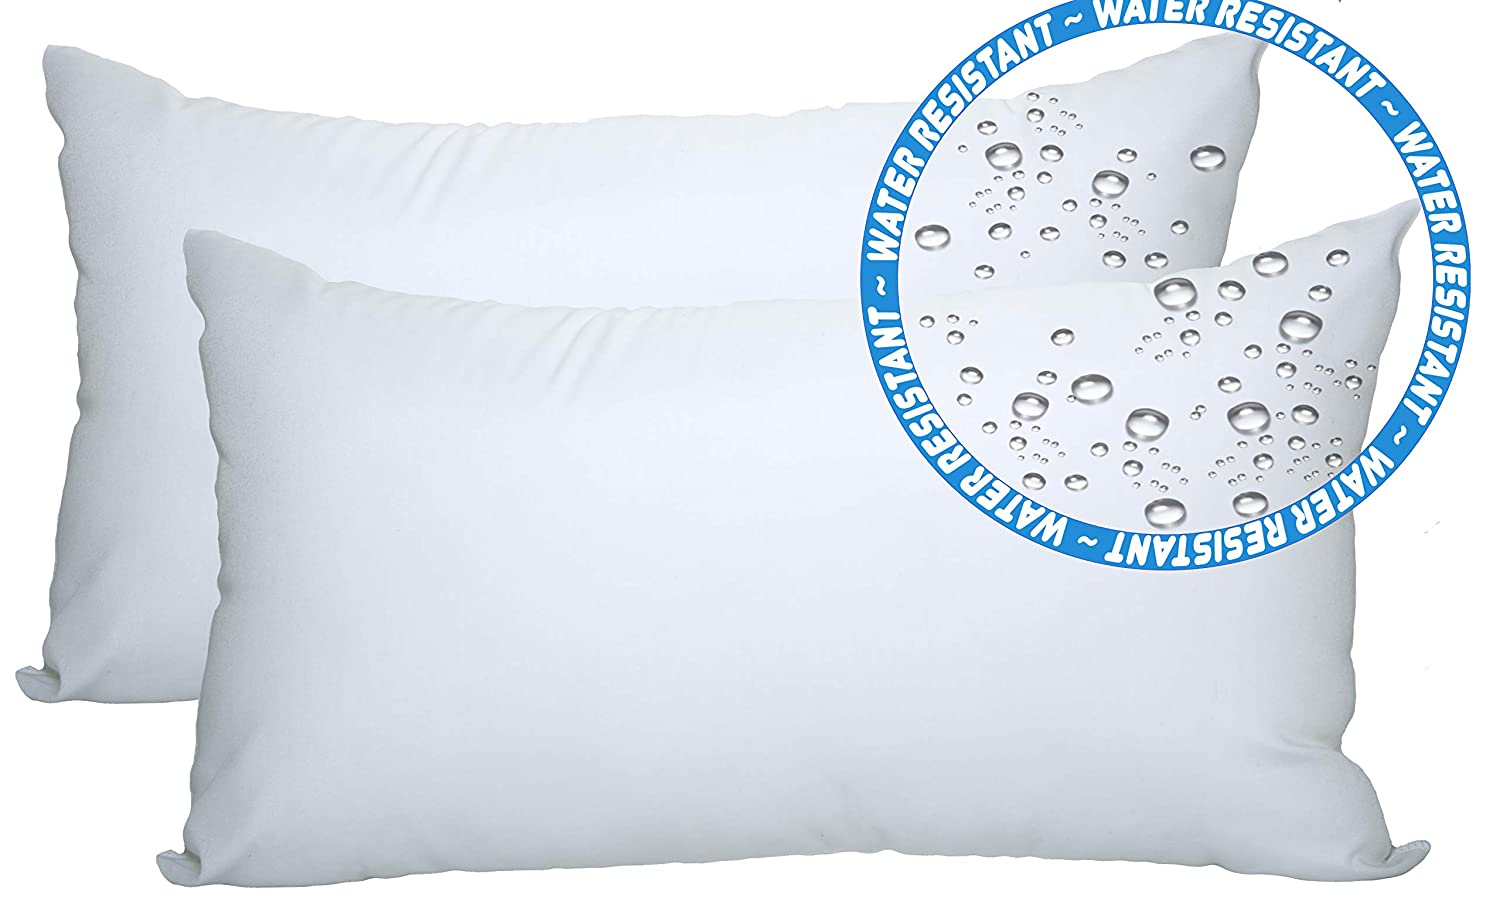 """Foamily 2 Pack - 12"""" x 20"""" Premium Outdoor Water and Mold Resistant Hypoallergenic Stuffer Pillow Throw Inserts Sham Square Form, Standard/White"""